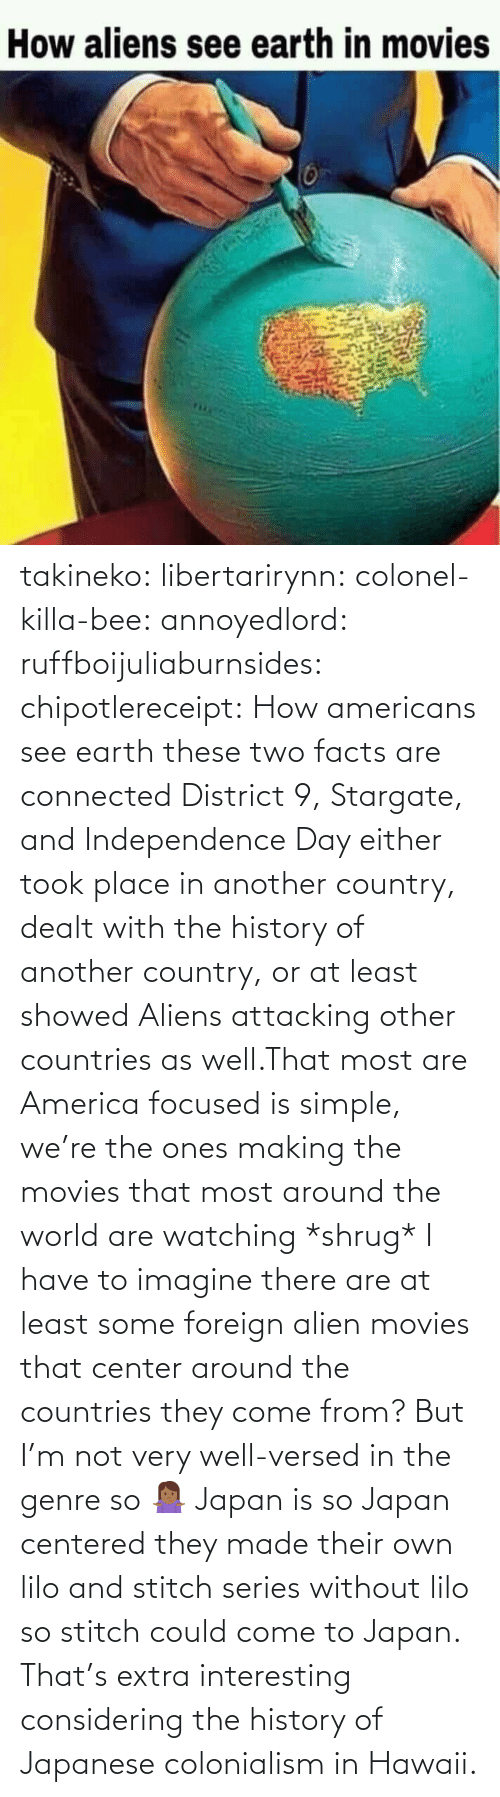 Very: takineko:  libertarirynn:  colonel-killa-bee:  annoyedlord: ruffboijuliaburnsides:  chipotlereceipt: How americans see earth these two facts are connected     District 9, Stargate, and Independence Day either took place in another country, dealt with the history of another country, or at least showed Aliens attacking other countries as well.That most are America focused is simple, we're the ones making the movies that most around the world are watching *shrug*   I have to imagine there are at least some foreign alien movies that center around the countries they come from? But I'm not very well-versed in the genre so 🤷🏾‍♀️   Japan is so Japan centered they made their own lilo and stitch series without lilo so stitch could come to Japan.    That's extra interesting considering the history of Japanese colonialism in Hawaii.